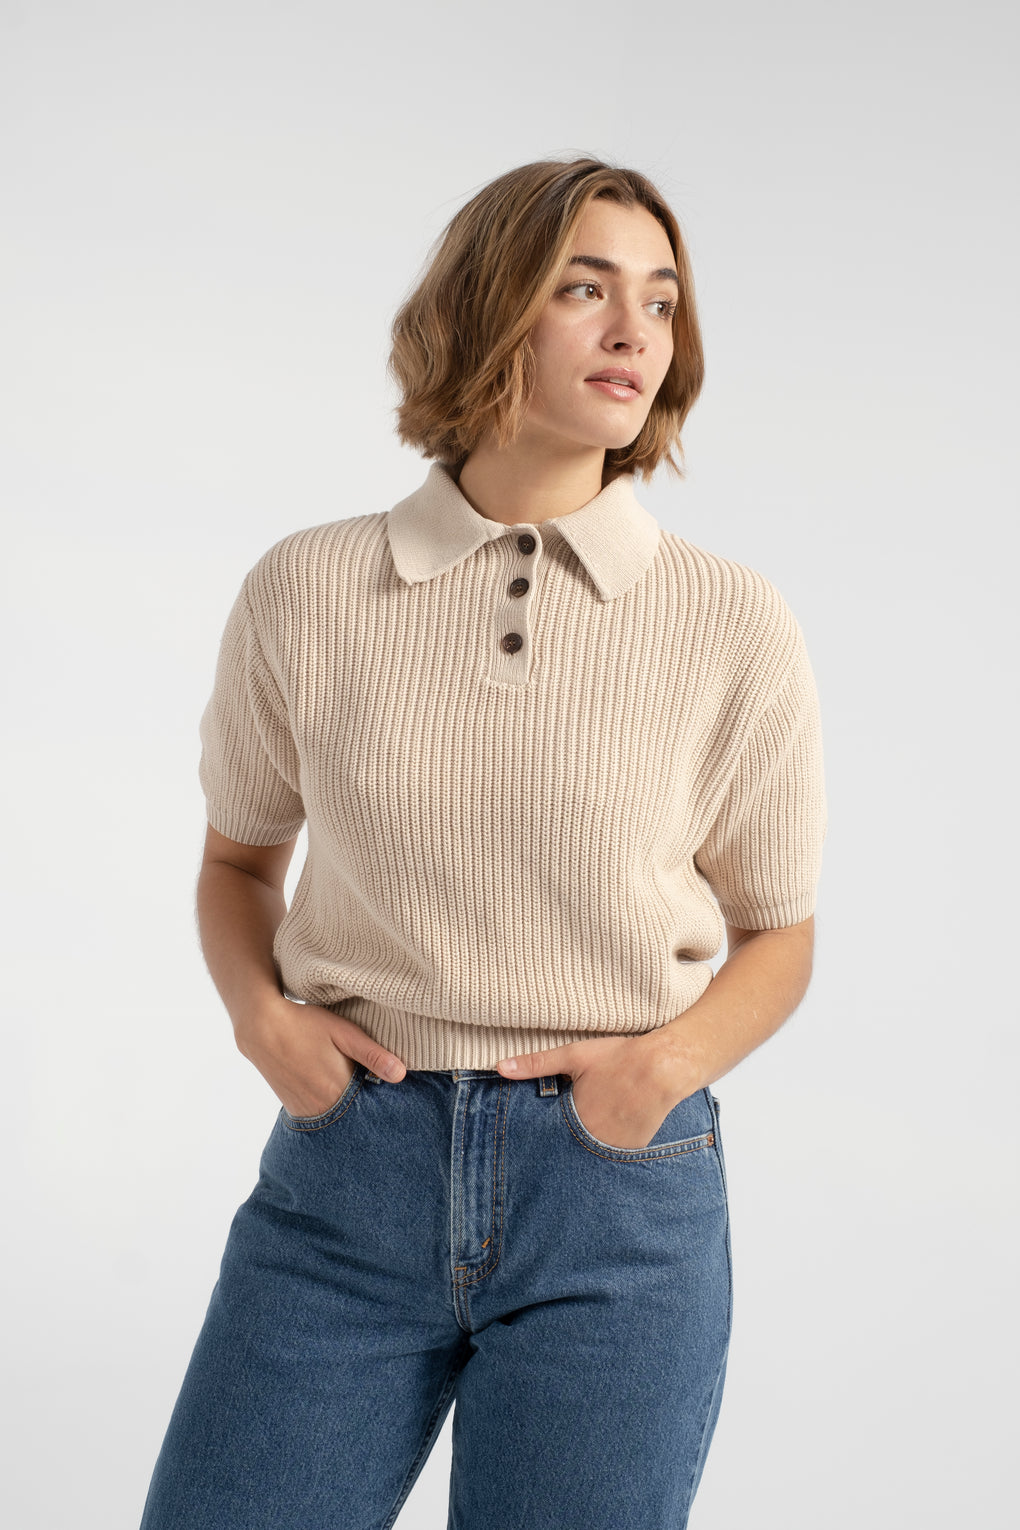 7115 by Szeki-7115 by Szeki collared pullover-7115 by Szeki tan sweater-7115 by Szeki sweater-short sleeve sweater-ribbed sweater-fall sweater-Idun-St. Paul